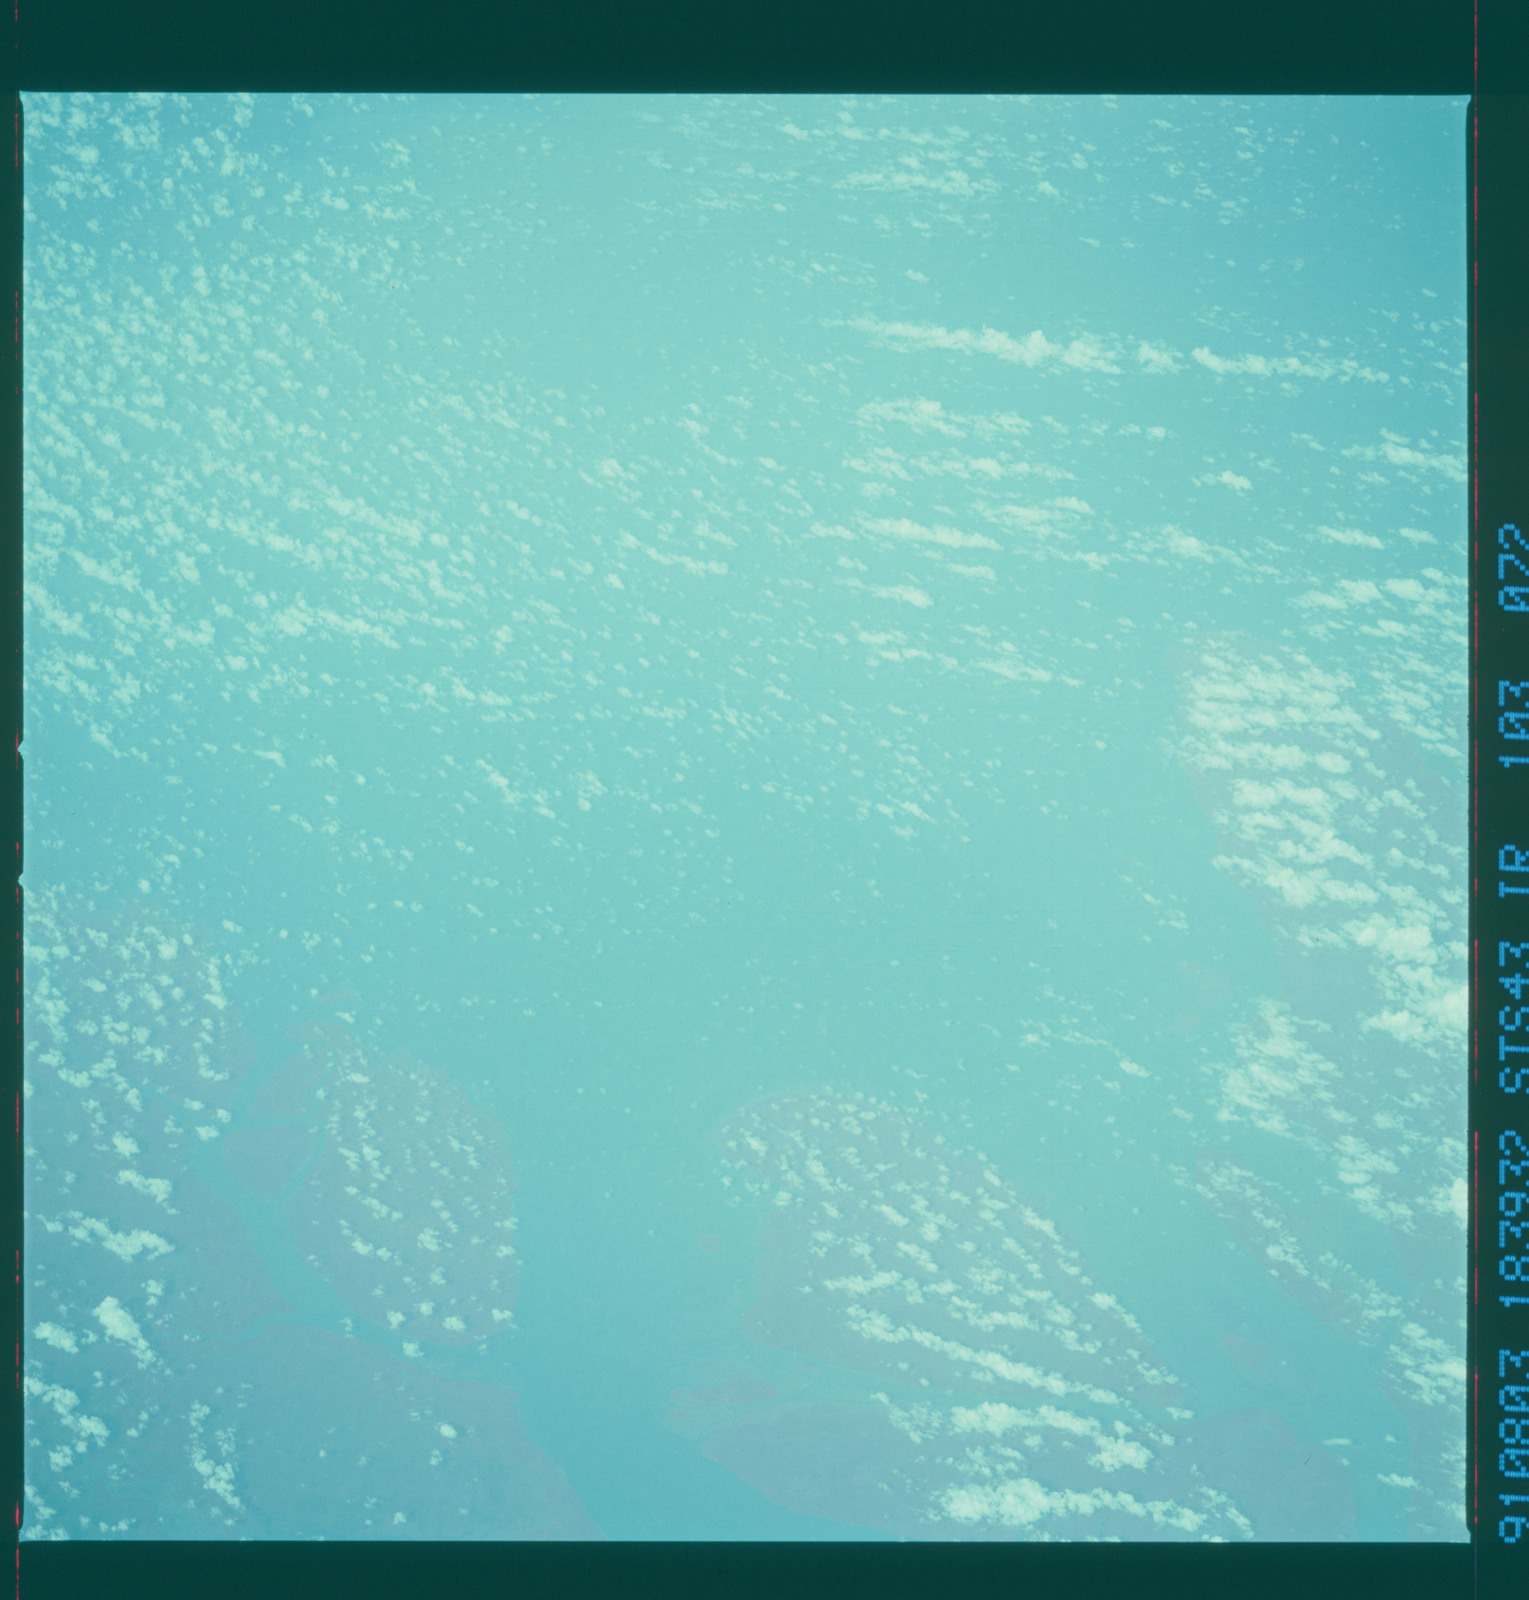 S43-103-072 - STS-043 - STS-43 earth observations